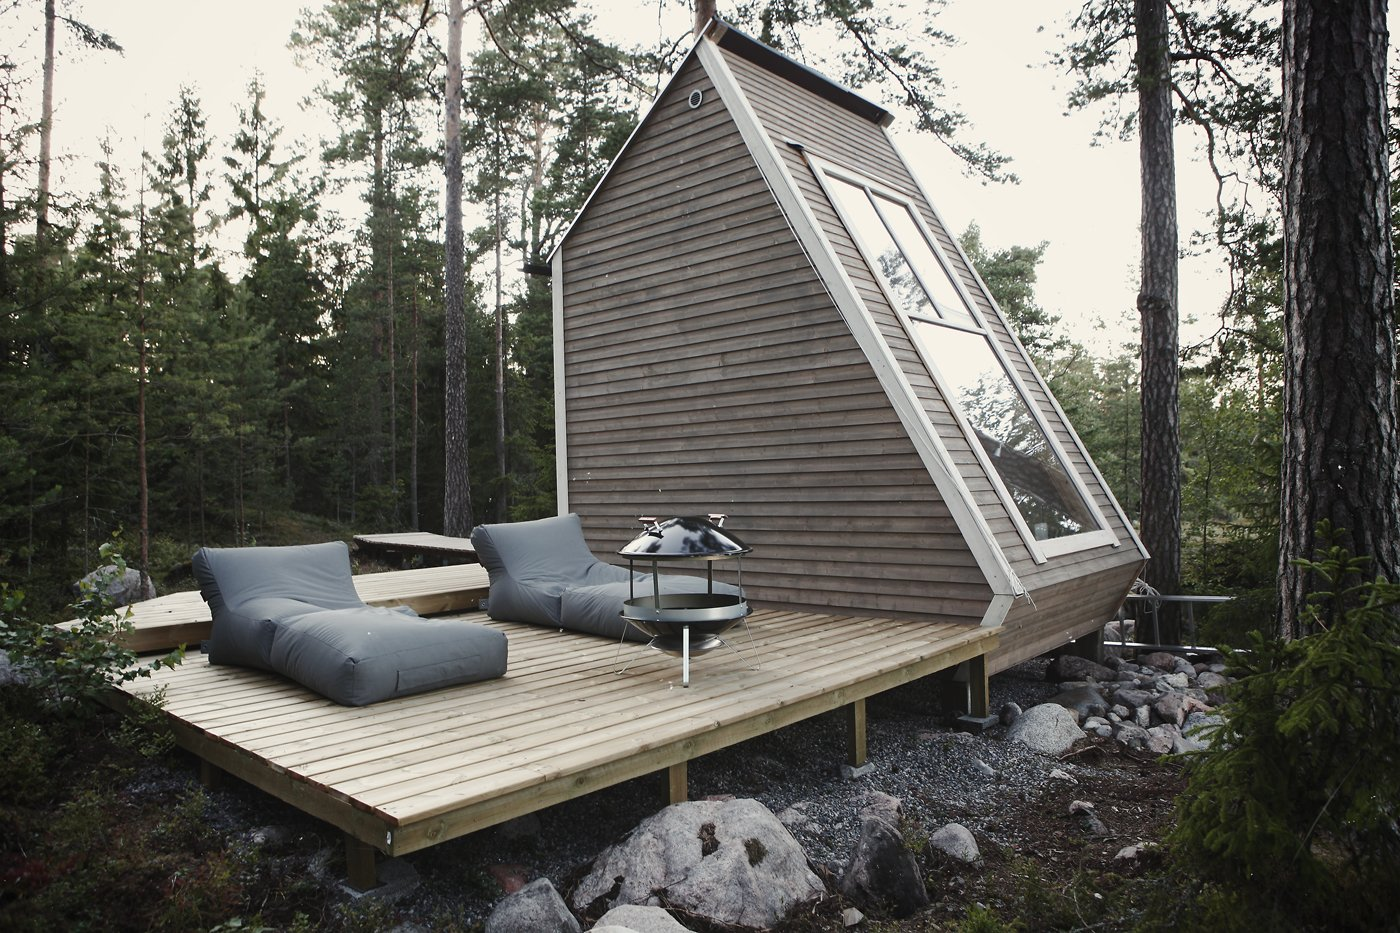 Nido Cabin by Robert Falck exterior with wood deck patio and forest landscape